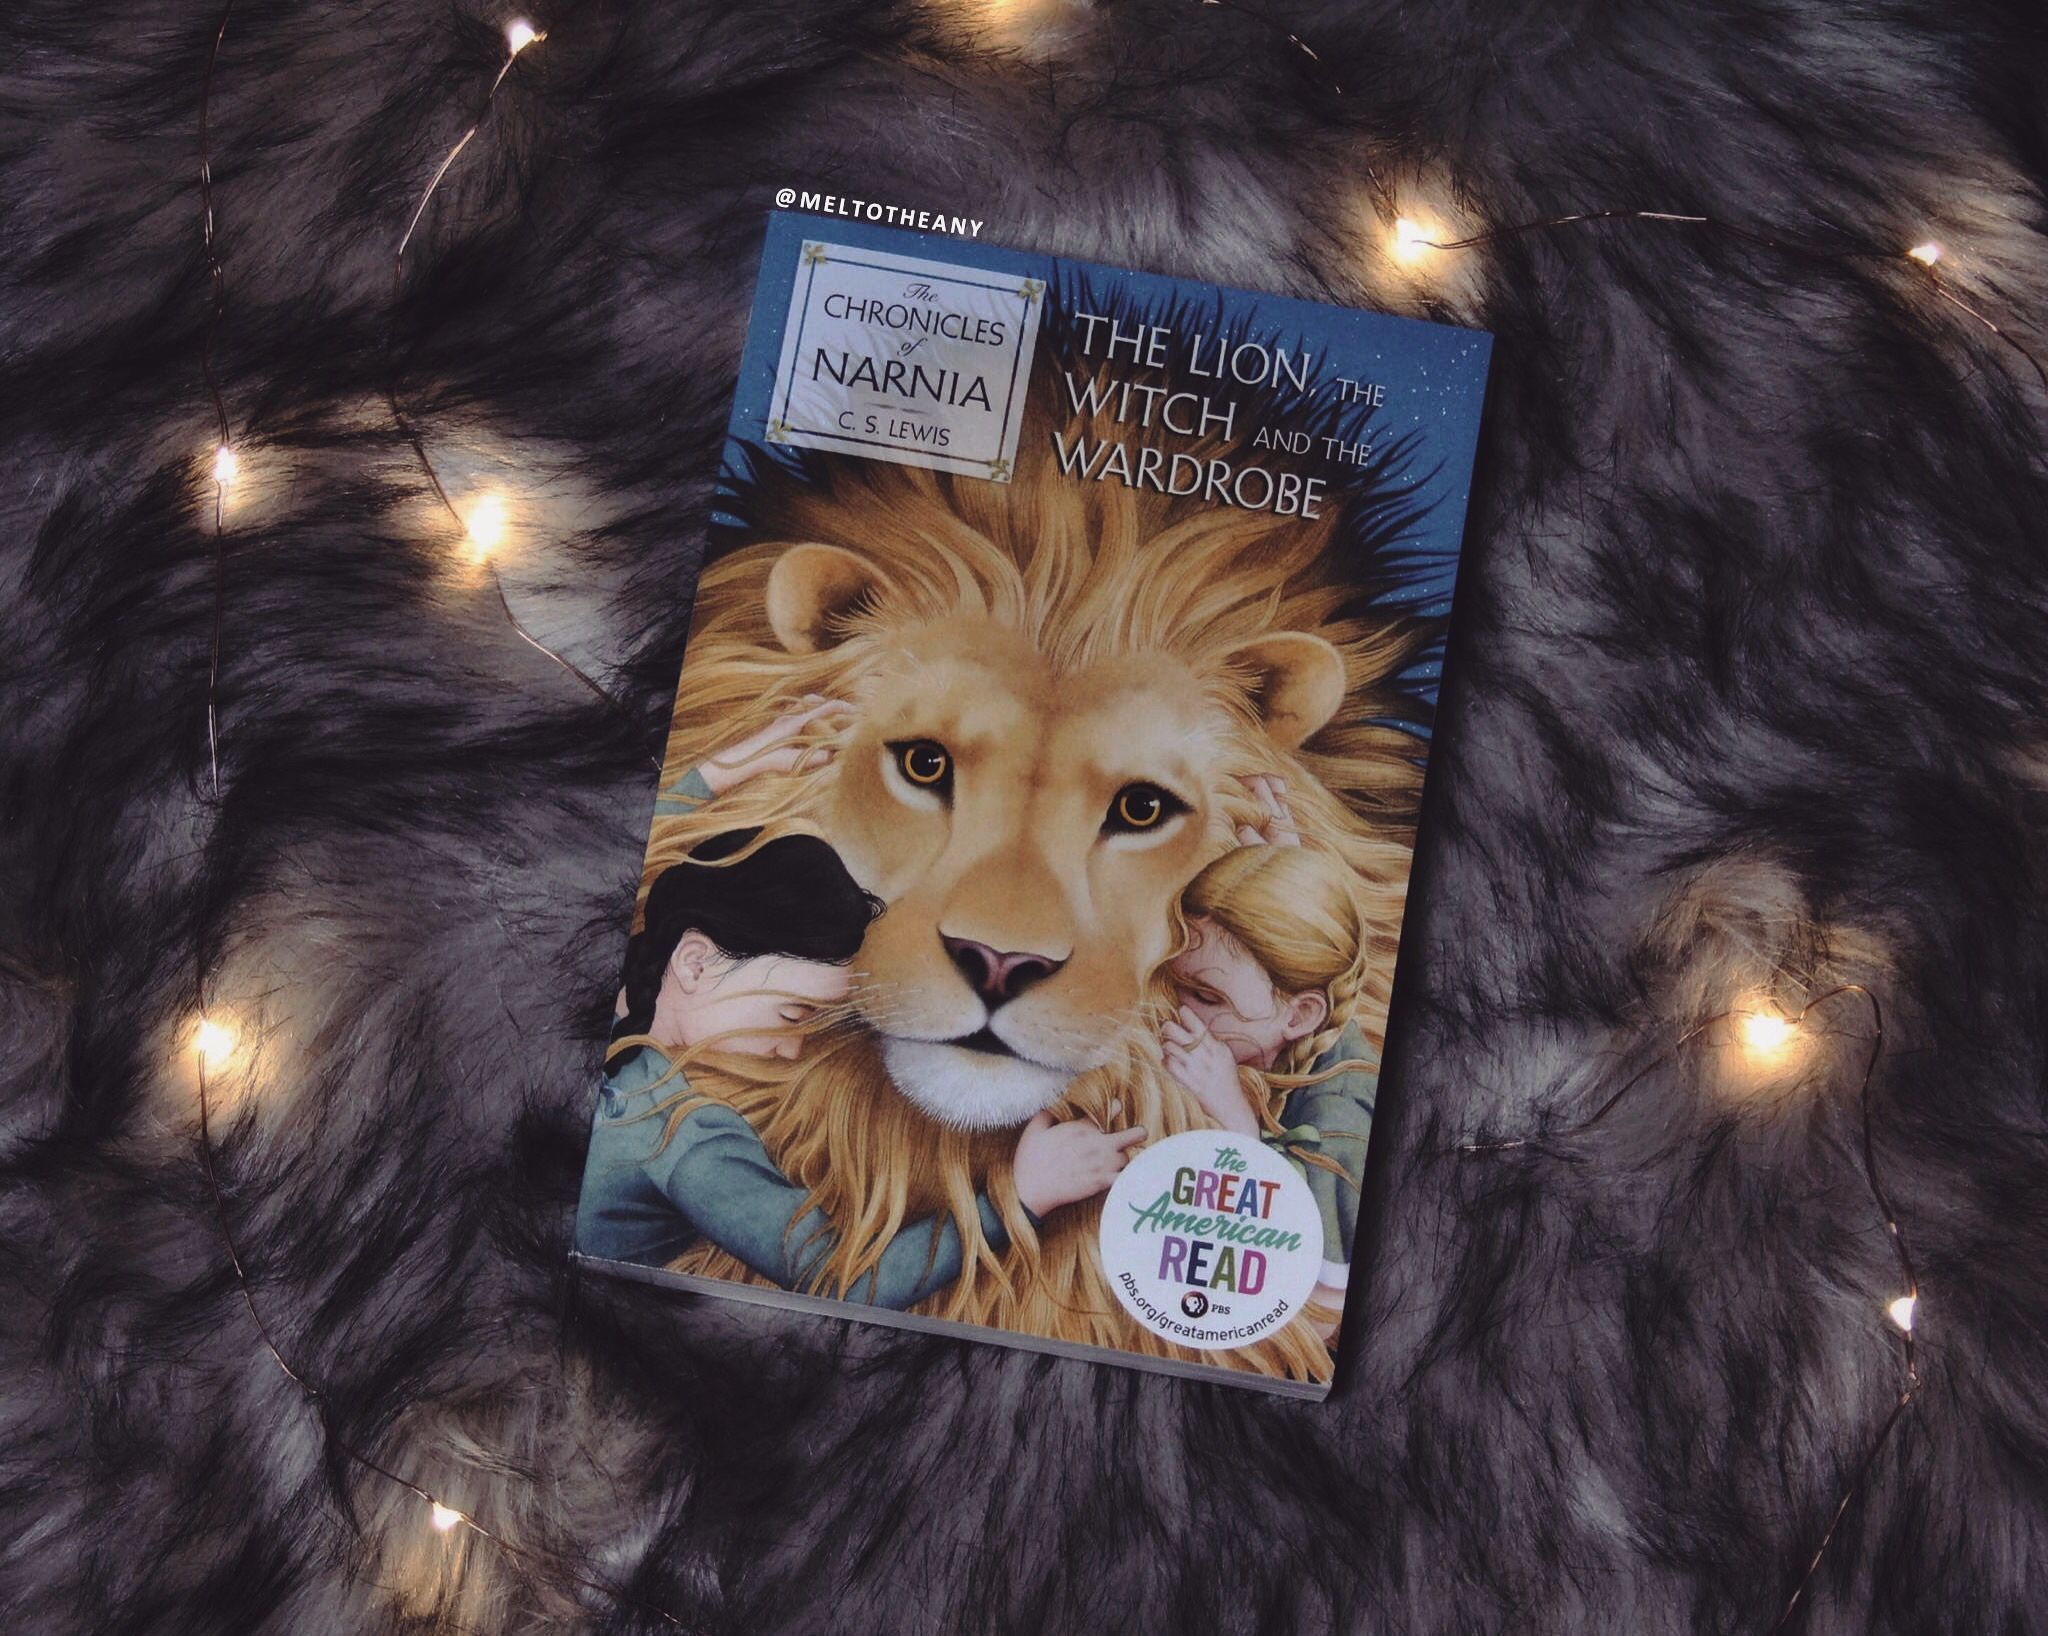 The Lion, the Witch and the Wardrobe (Chronicles of Narnia